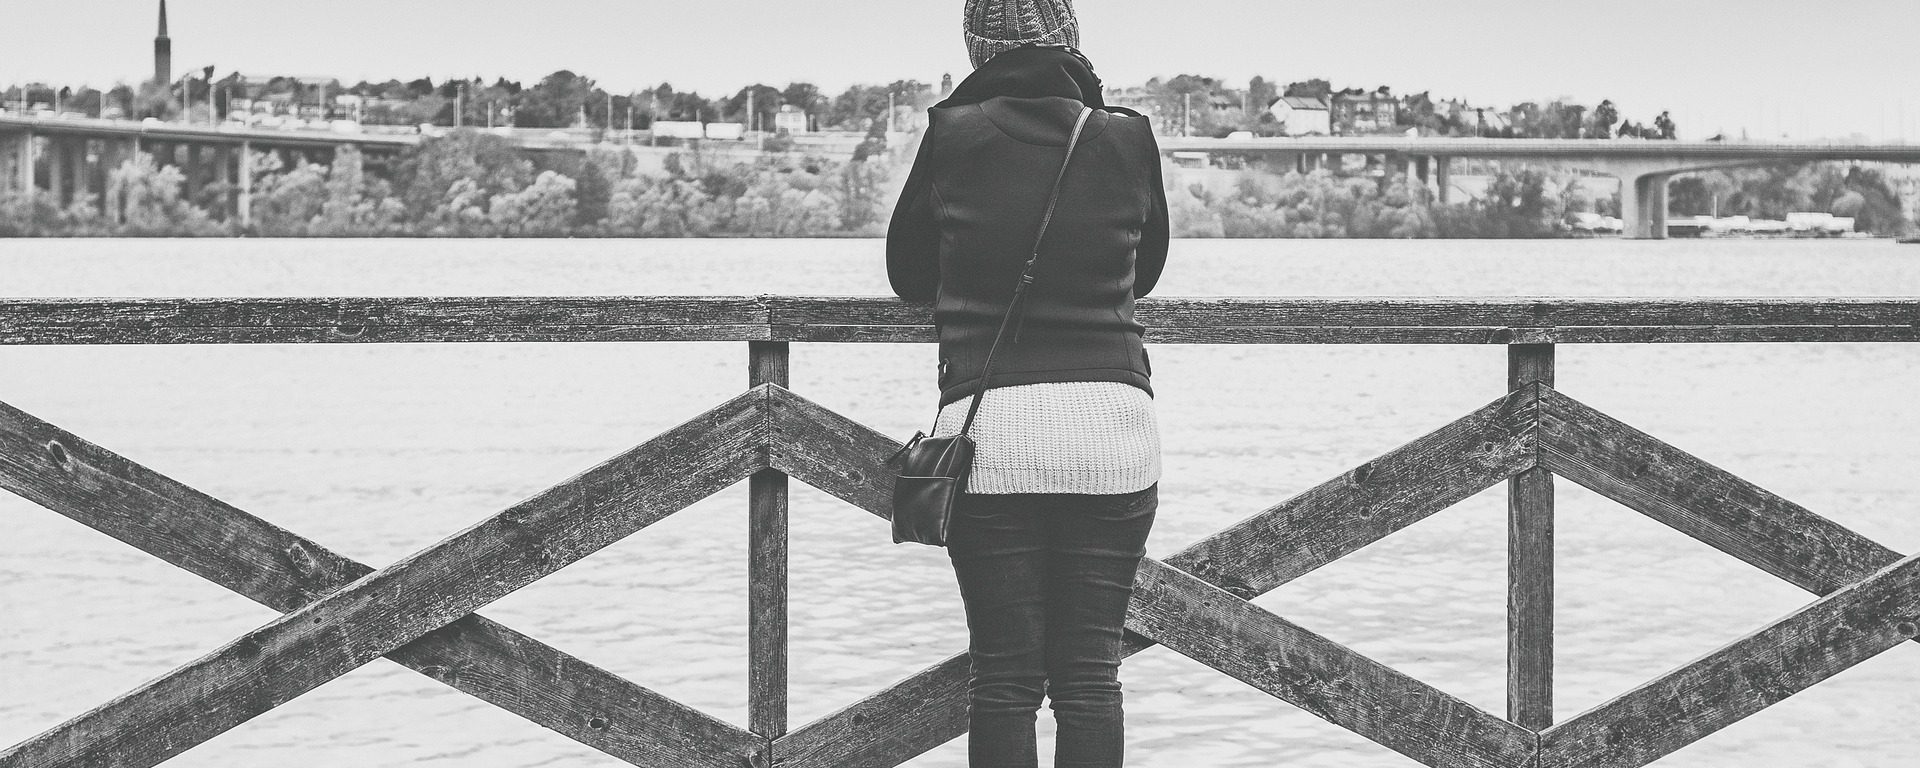 woman,view,stockholm,sweden,looking,out,thinking,wondering,future,past,problem,solution,planning,imaging,considering,girl,female,person,watching,clouds,water,sea,city,cityscape,hat,wood,fence,protection,outdoors,construction,depression,anxiety